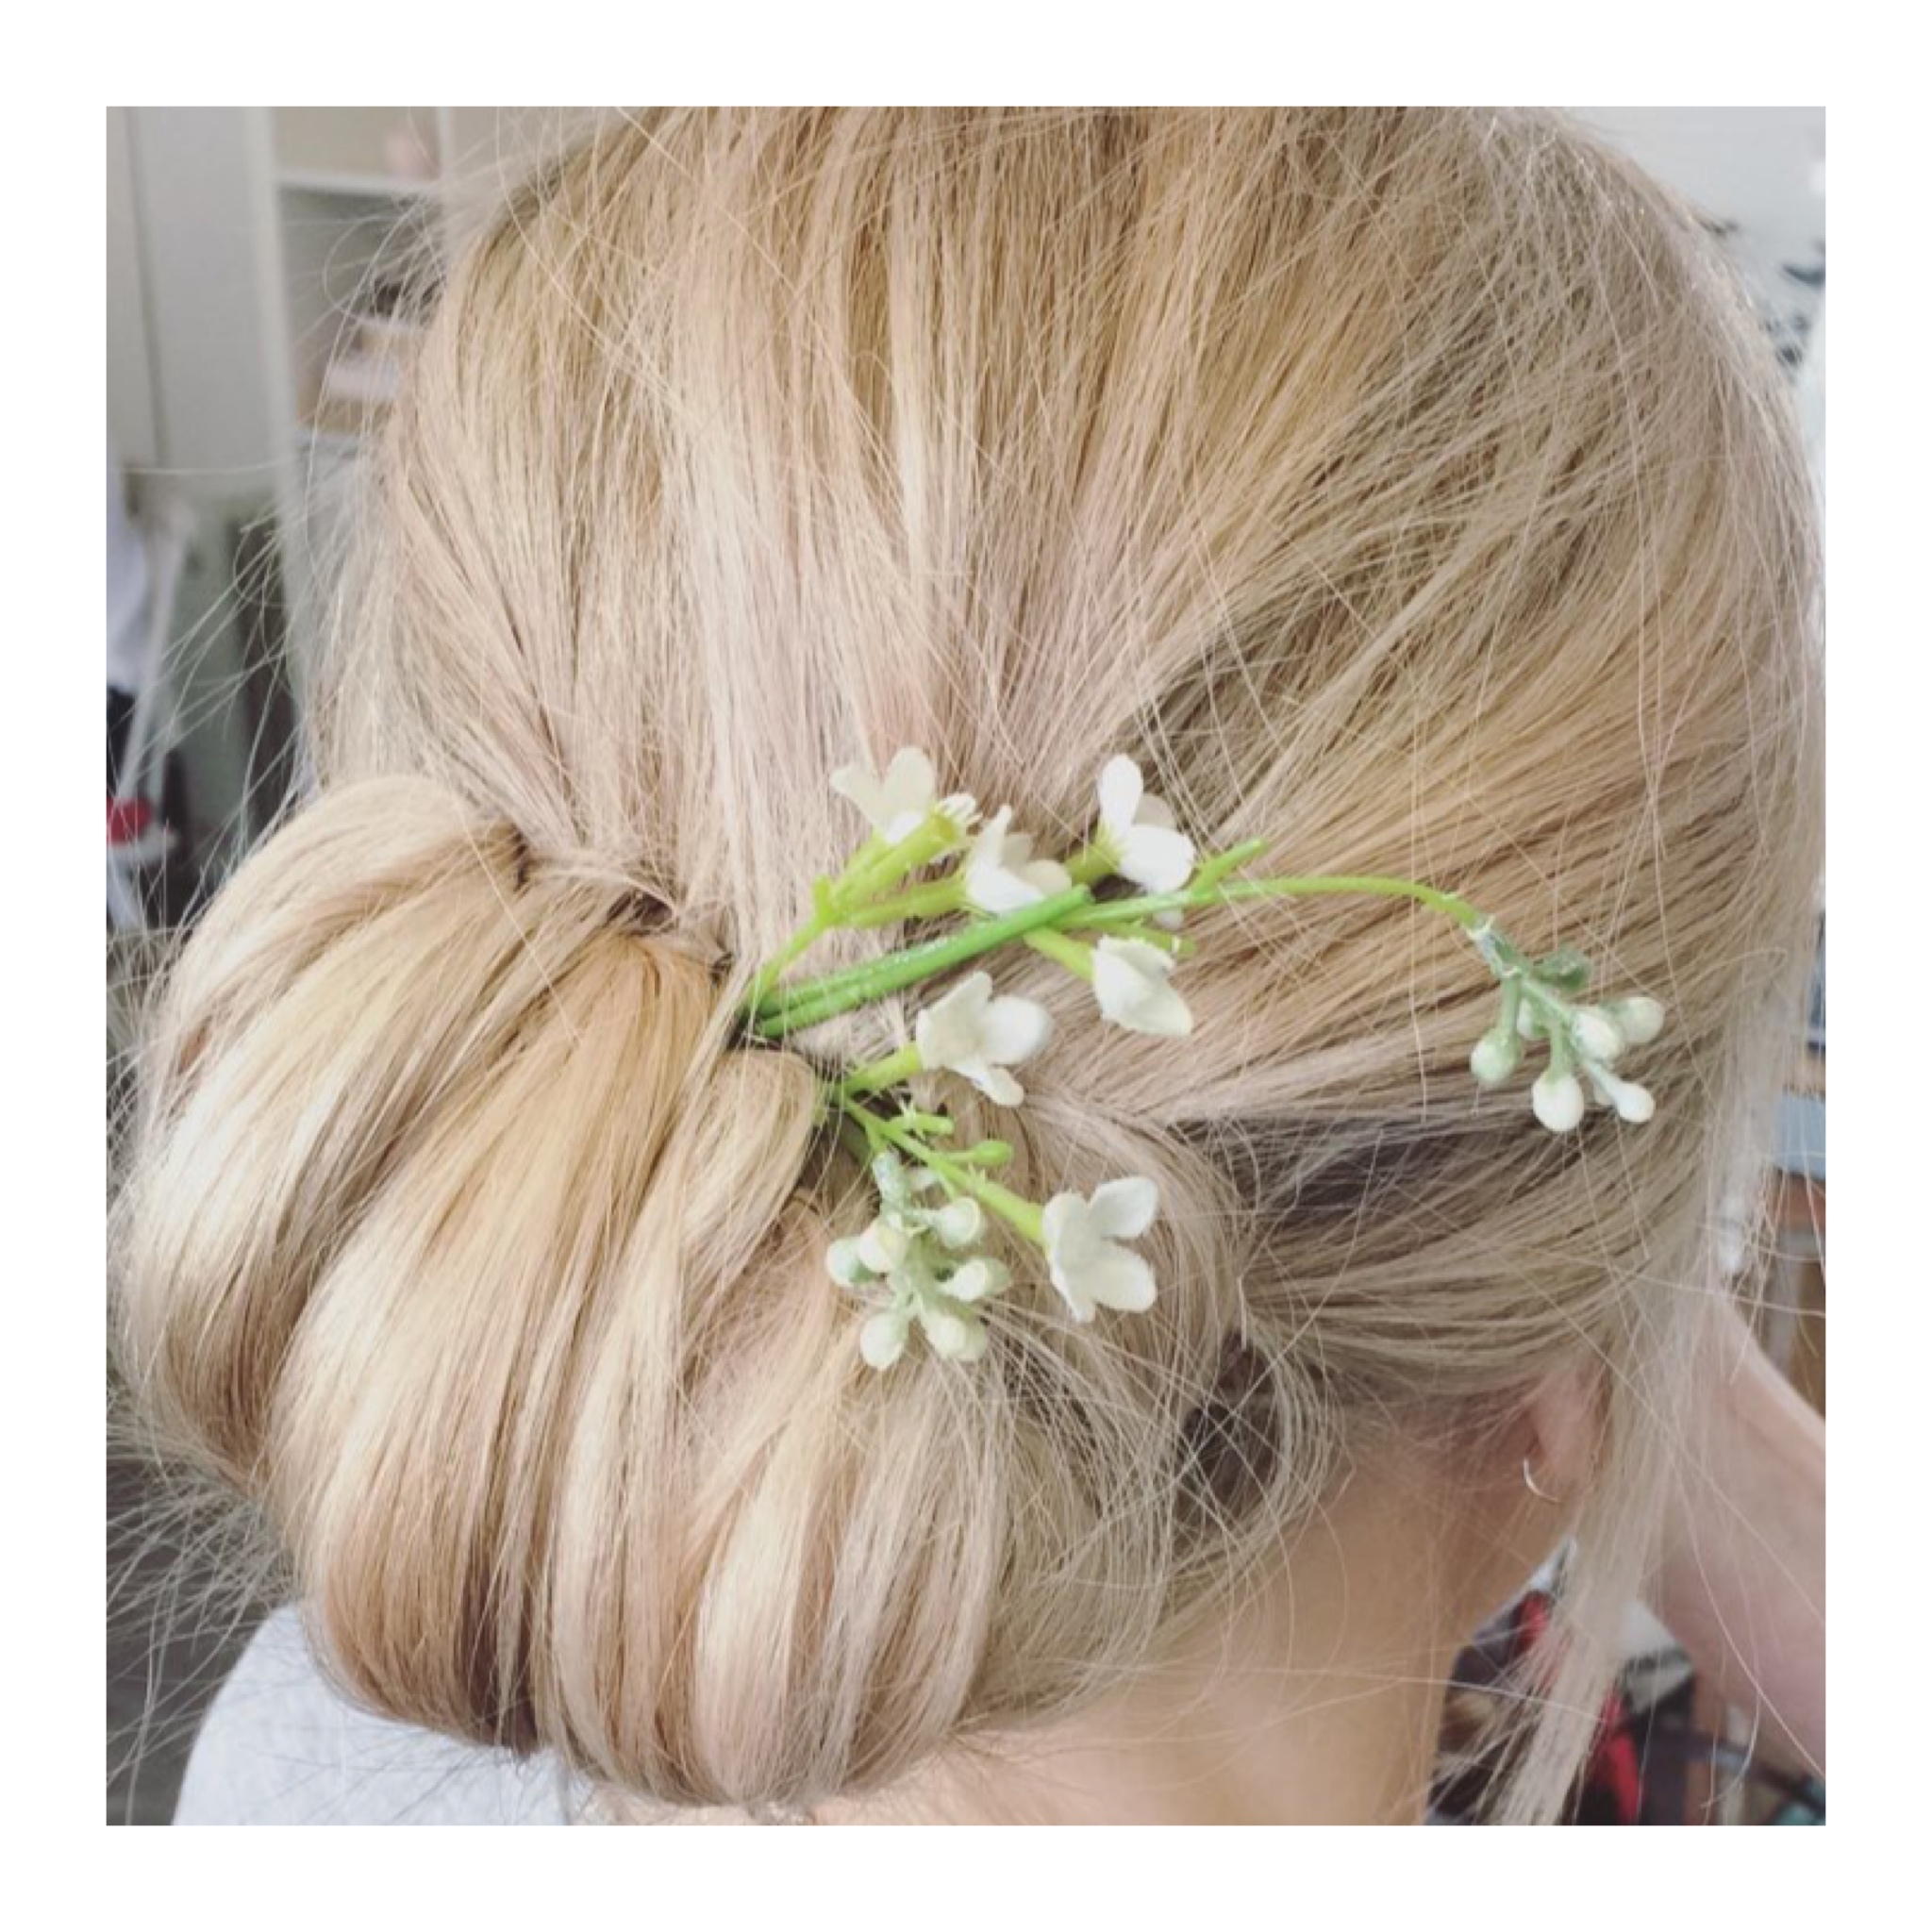 Upstyle with flowers